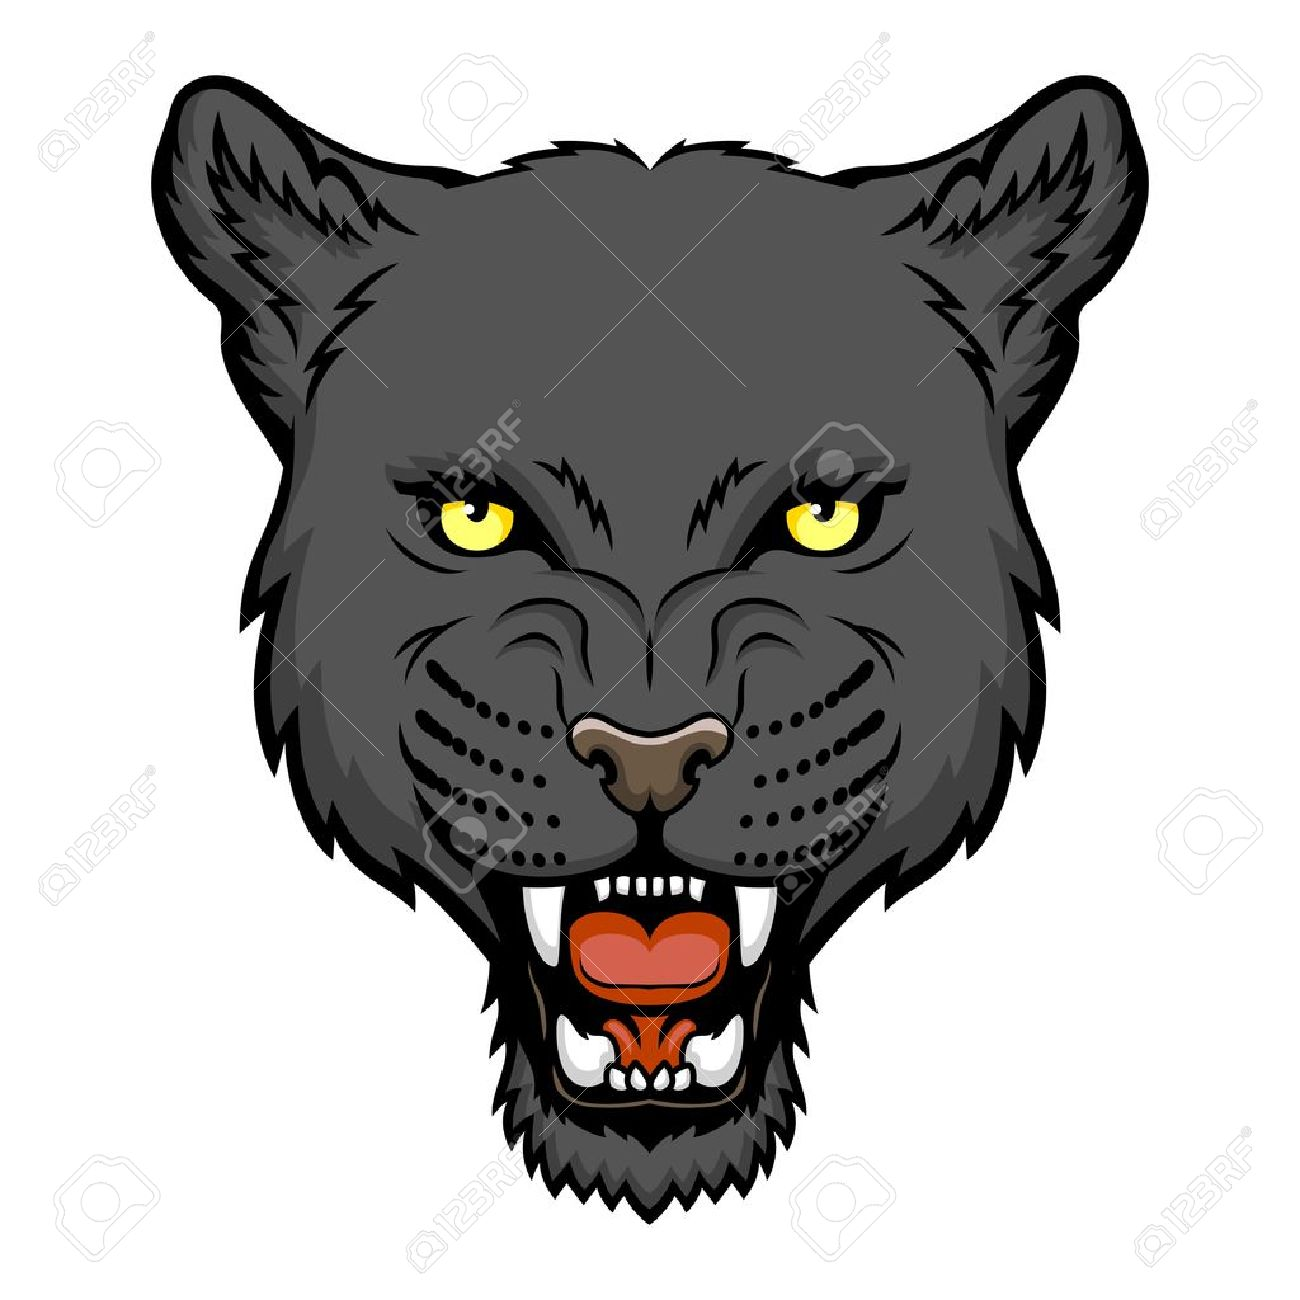 a panther head logo this is illustration ideal for a mascot rh 123rf com black panther head logo Panther Logo Designs